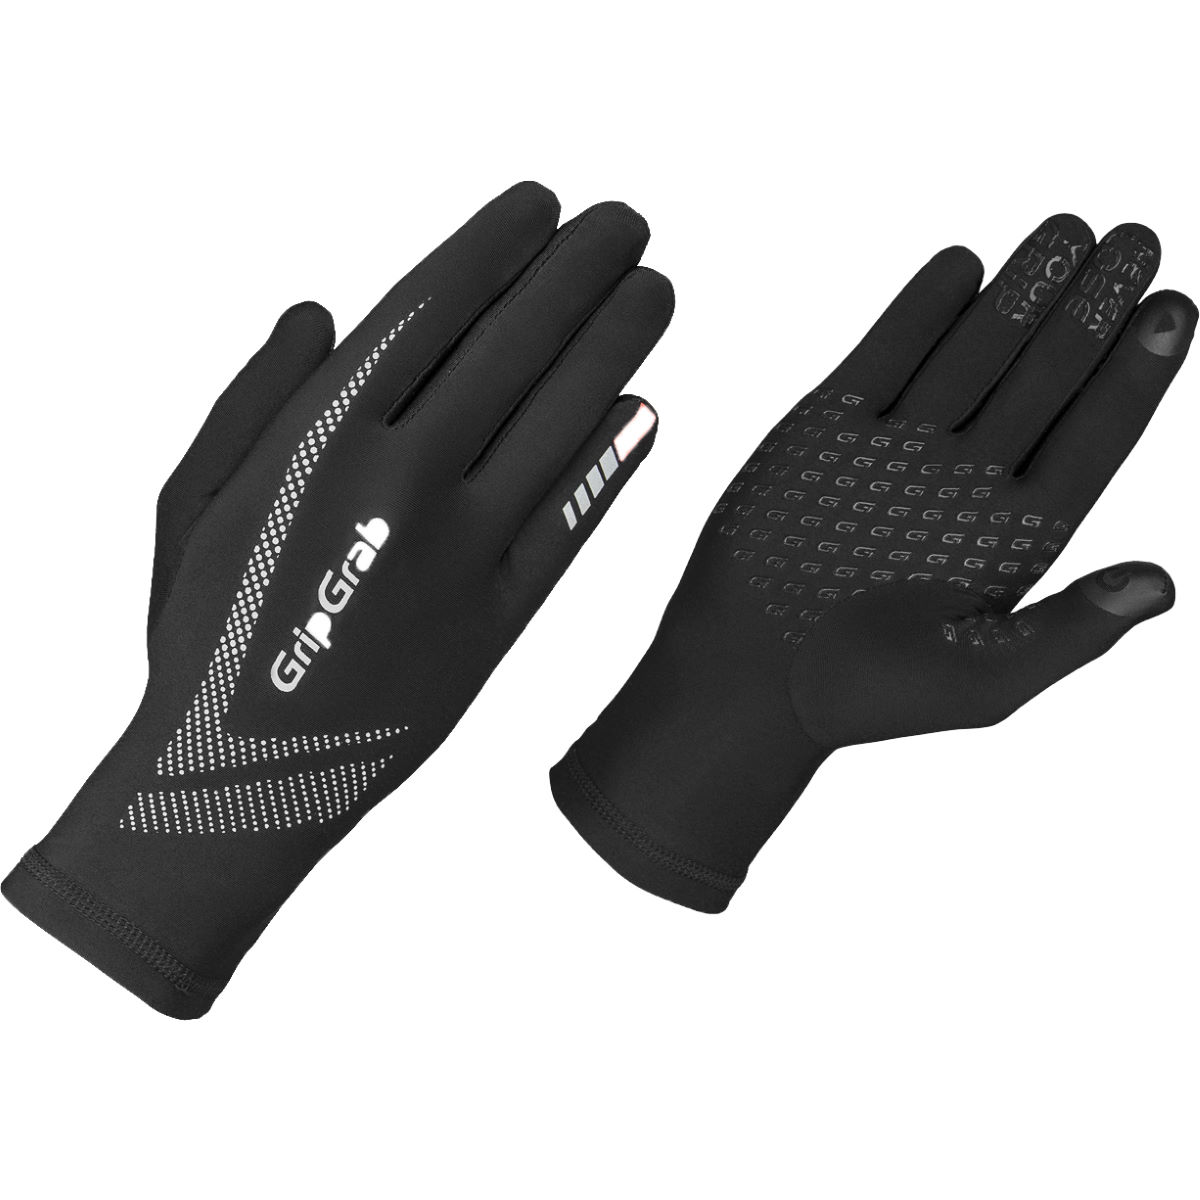 Gants de running GripGrab Ultra Light - S Noir Gants de running